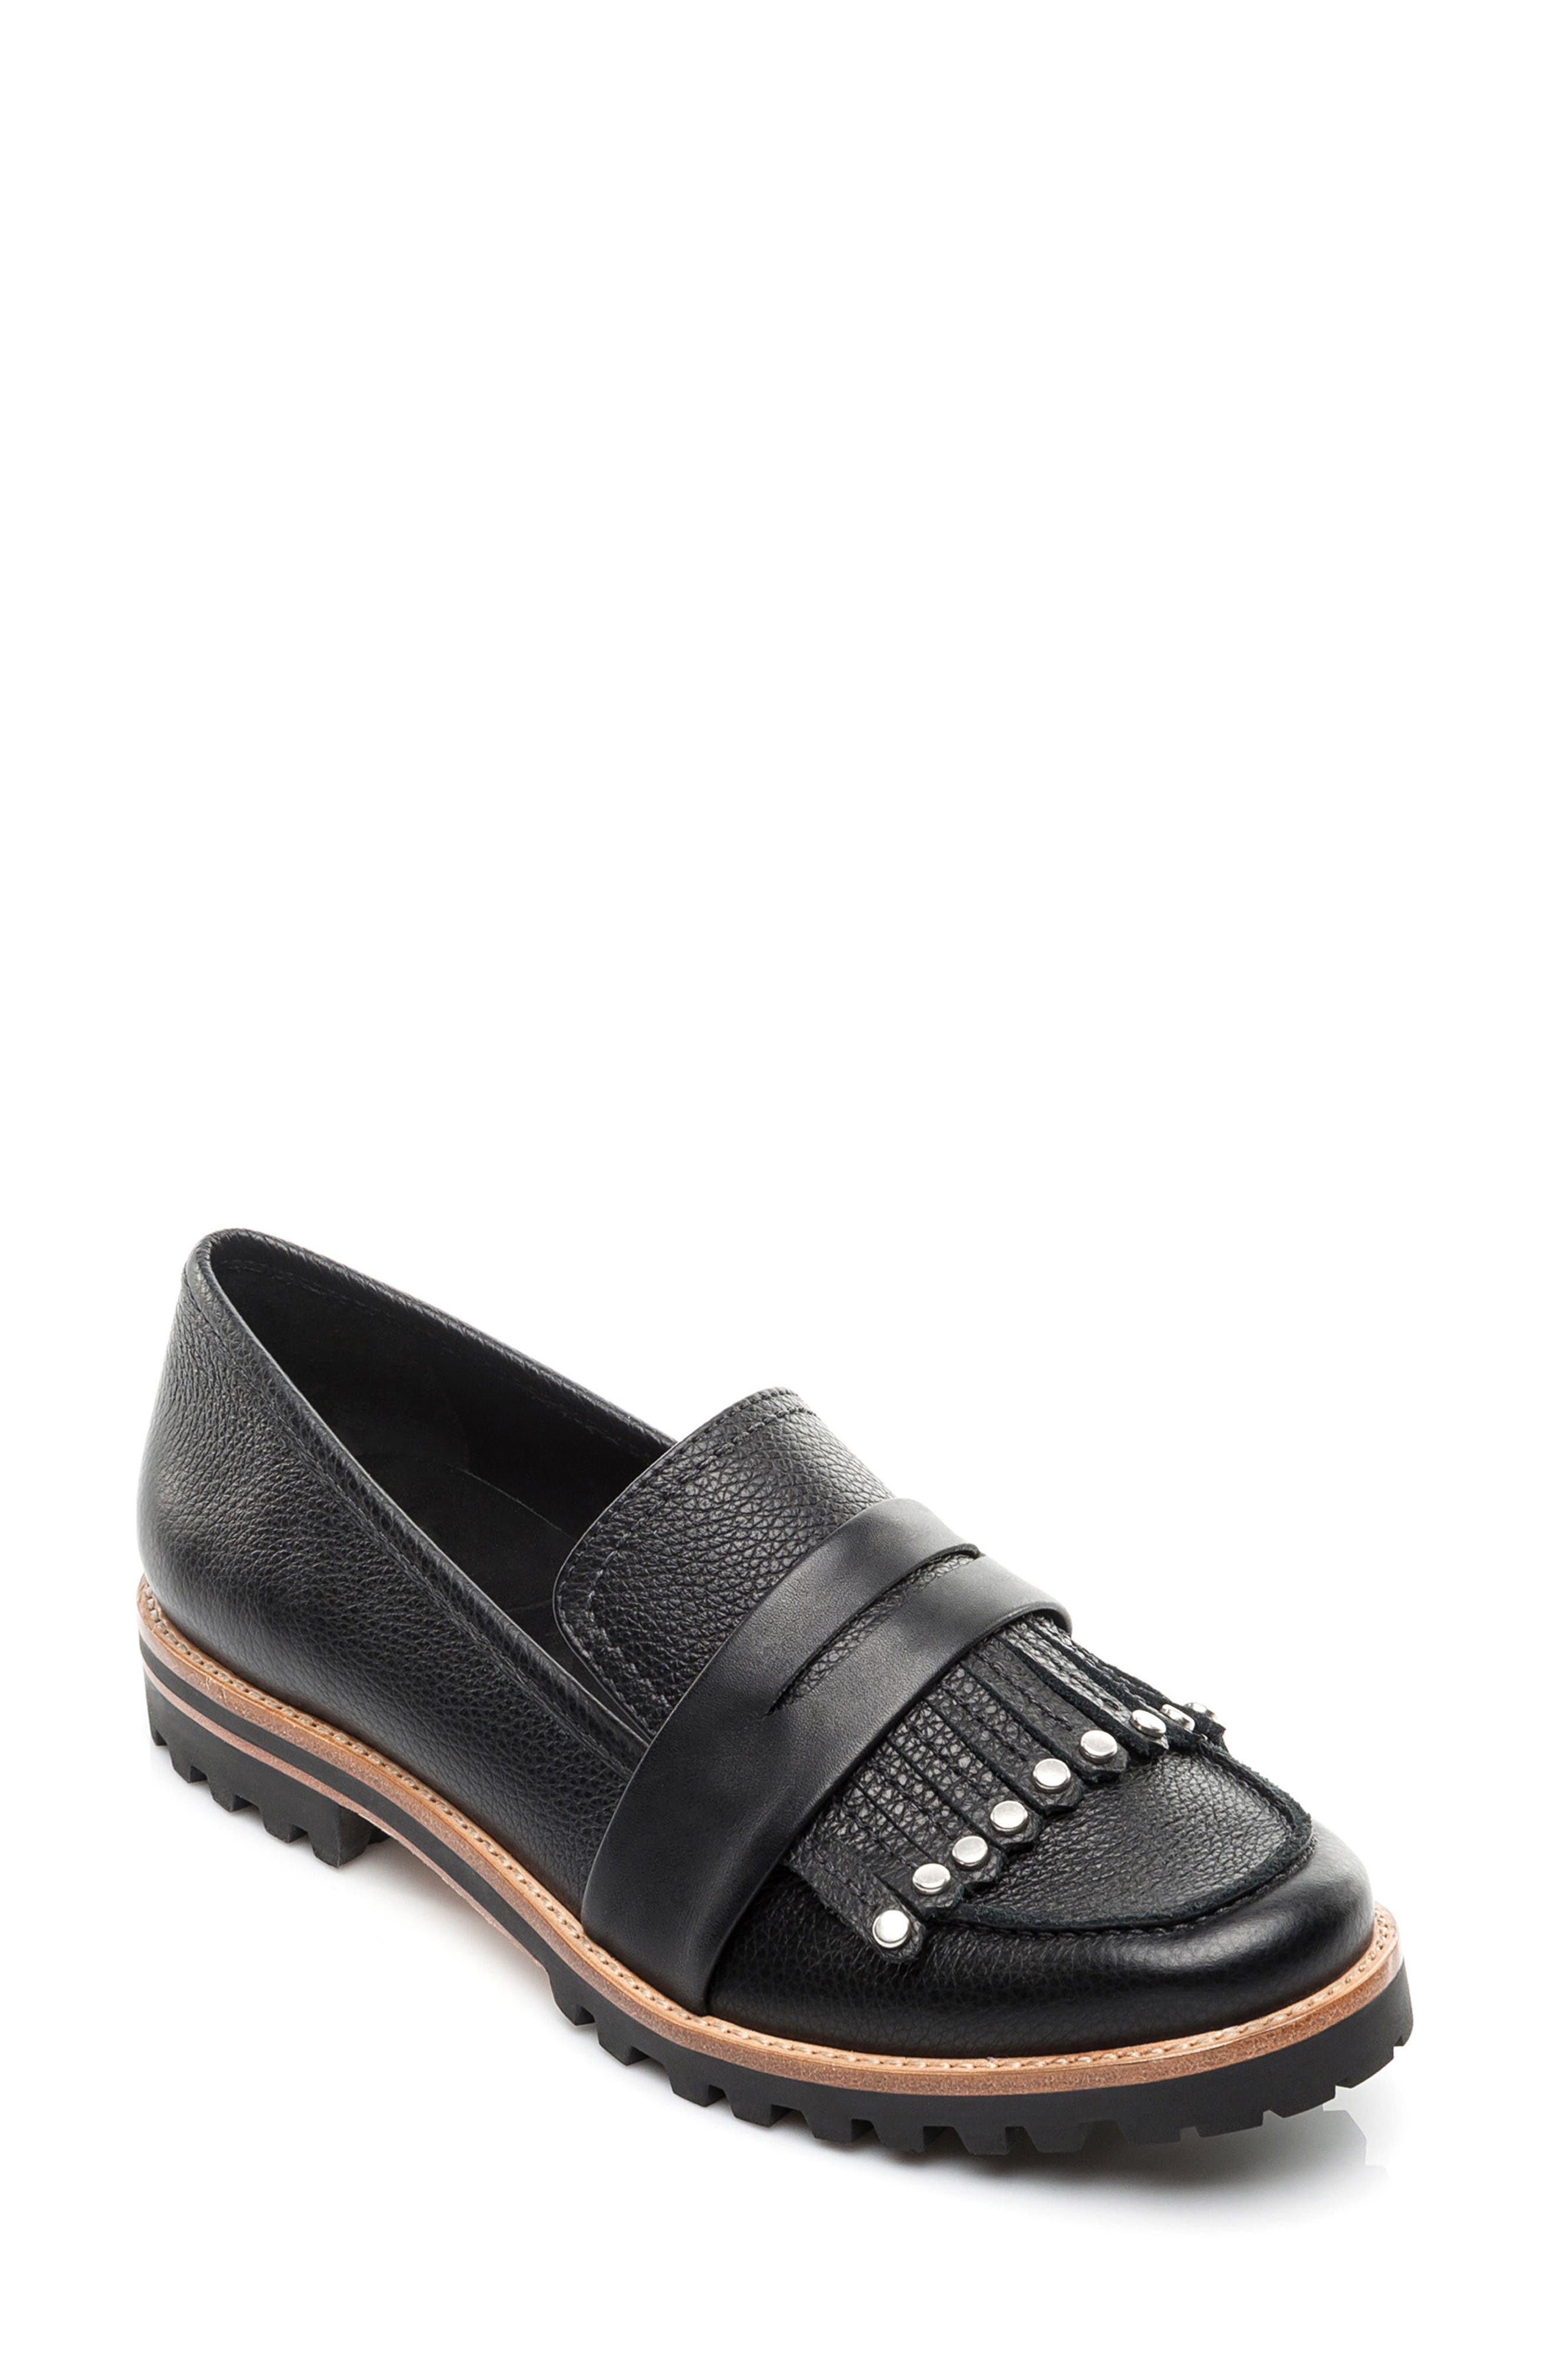 Olley Loafer,                         Main,                         color, Black Leather